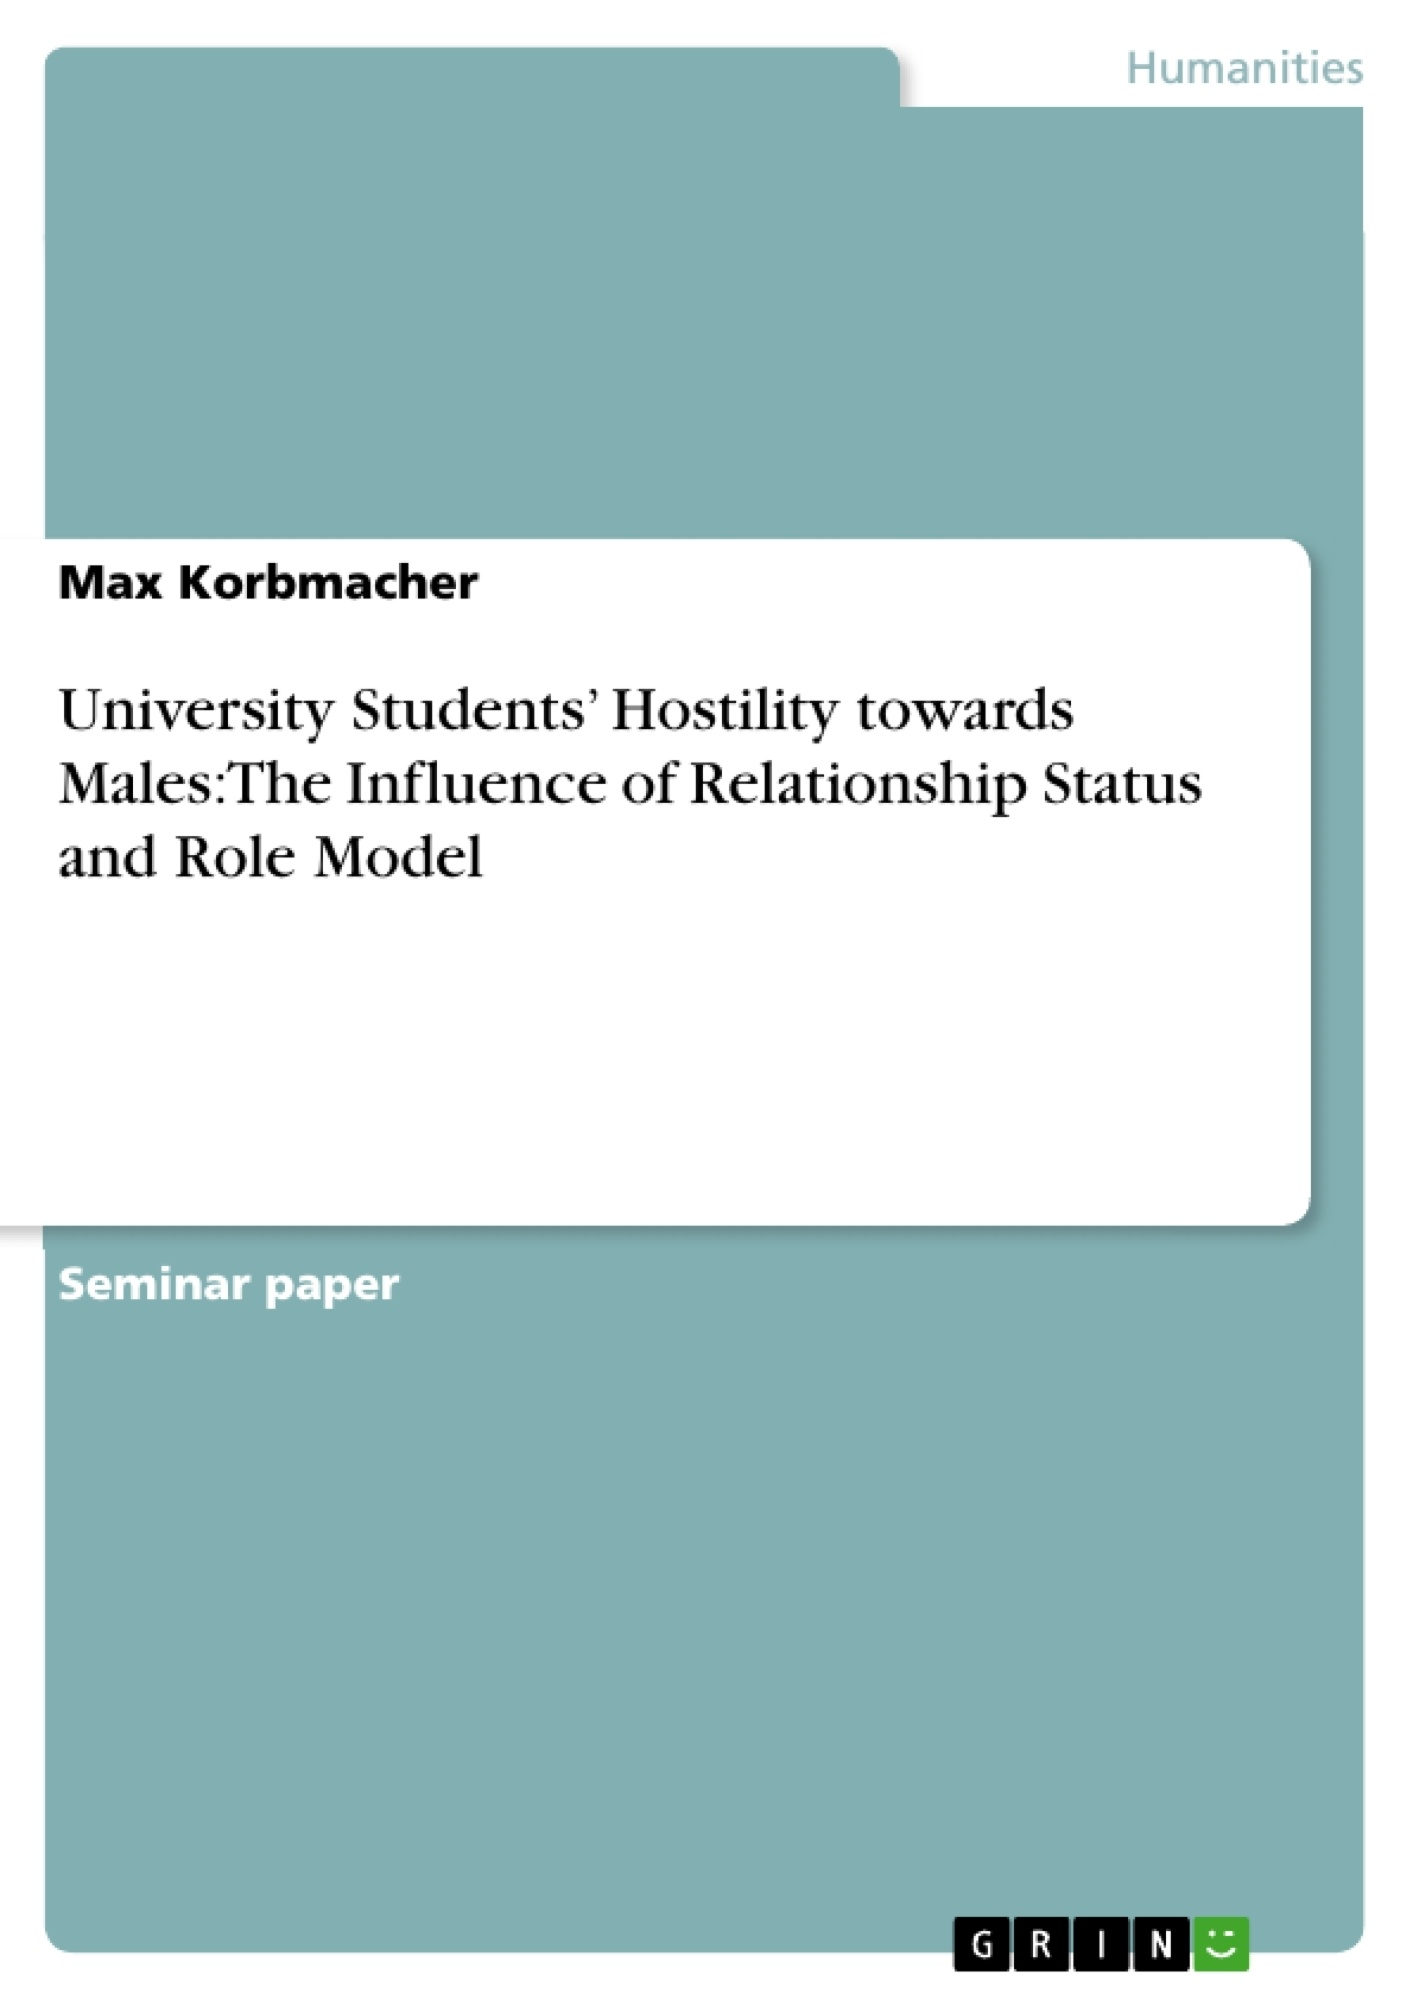 Title: University Students' Hostility towards Males: The Influence of Relationship Status and Role Model